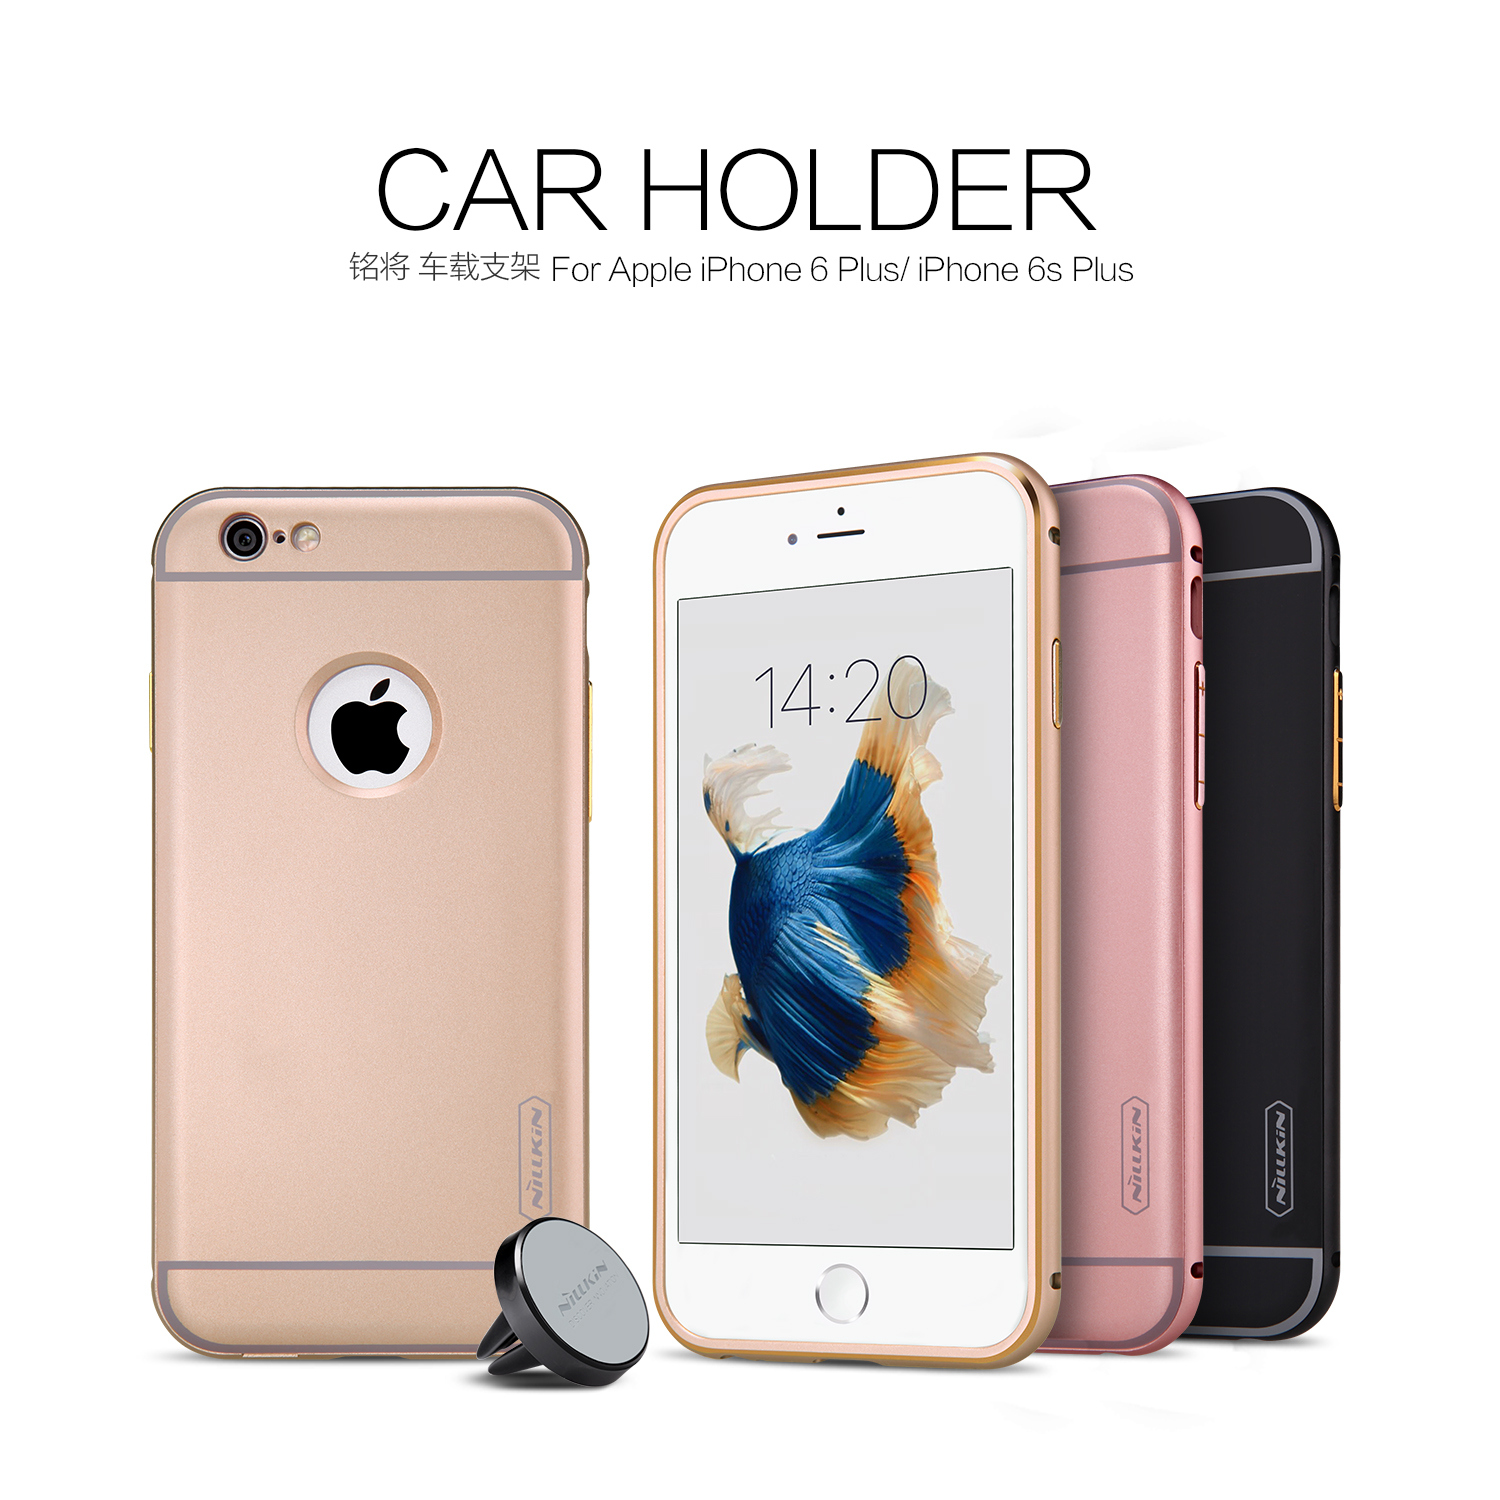 Nile gold iphone6s plus phone shell mobile phone shell apple 6 s apple 6 plus protective shell protective sleeve plus